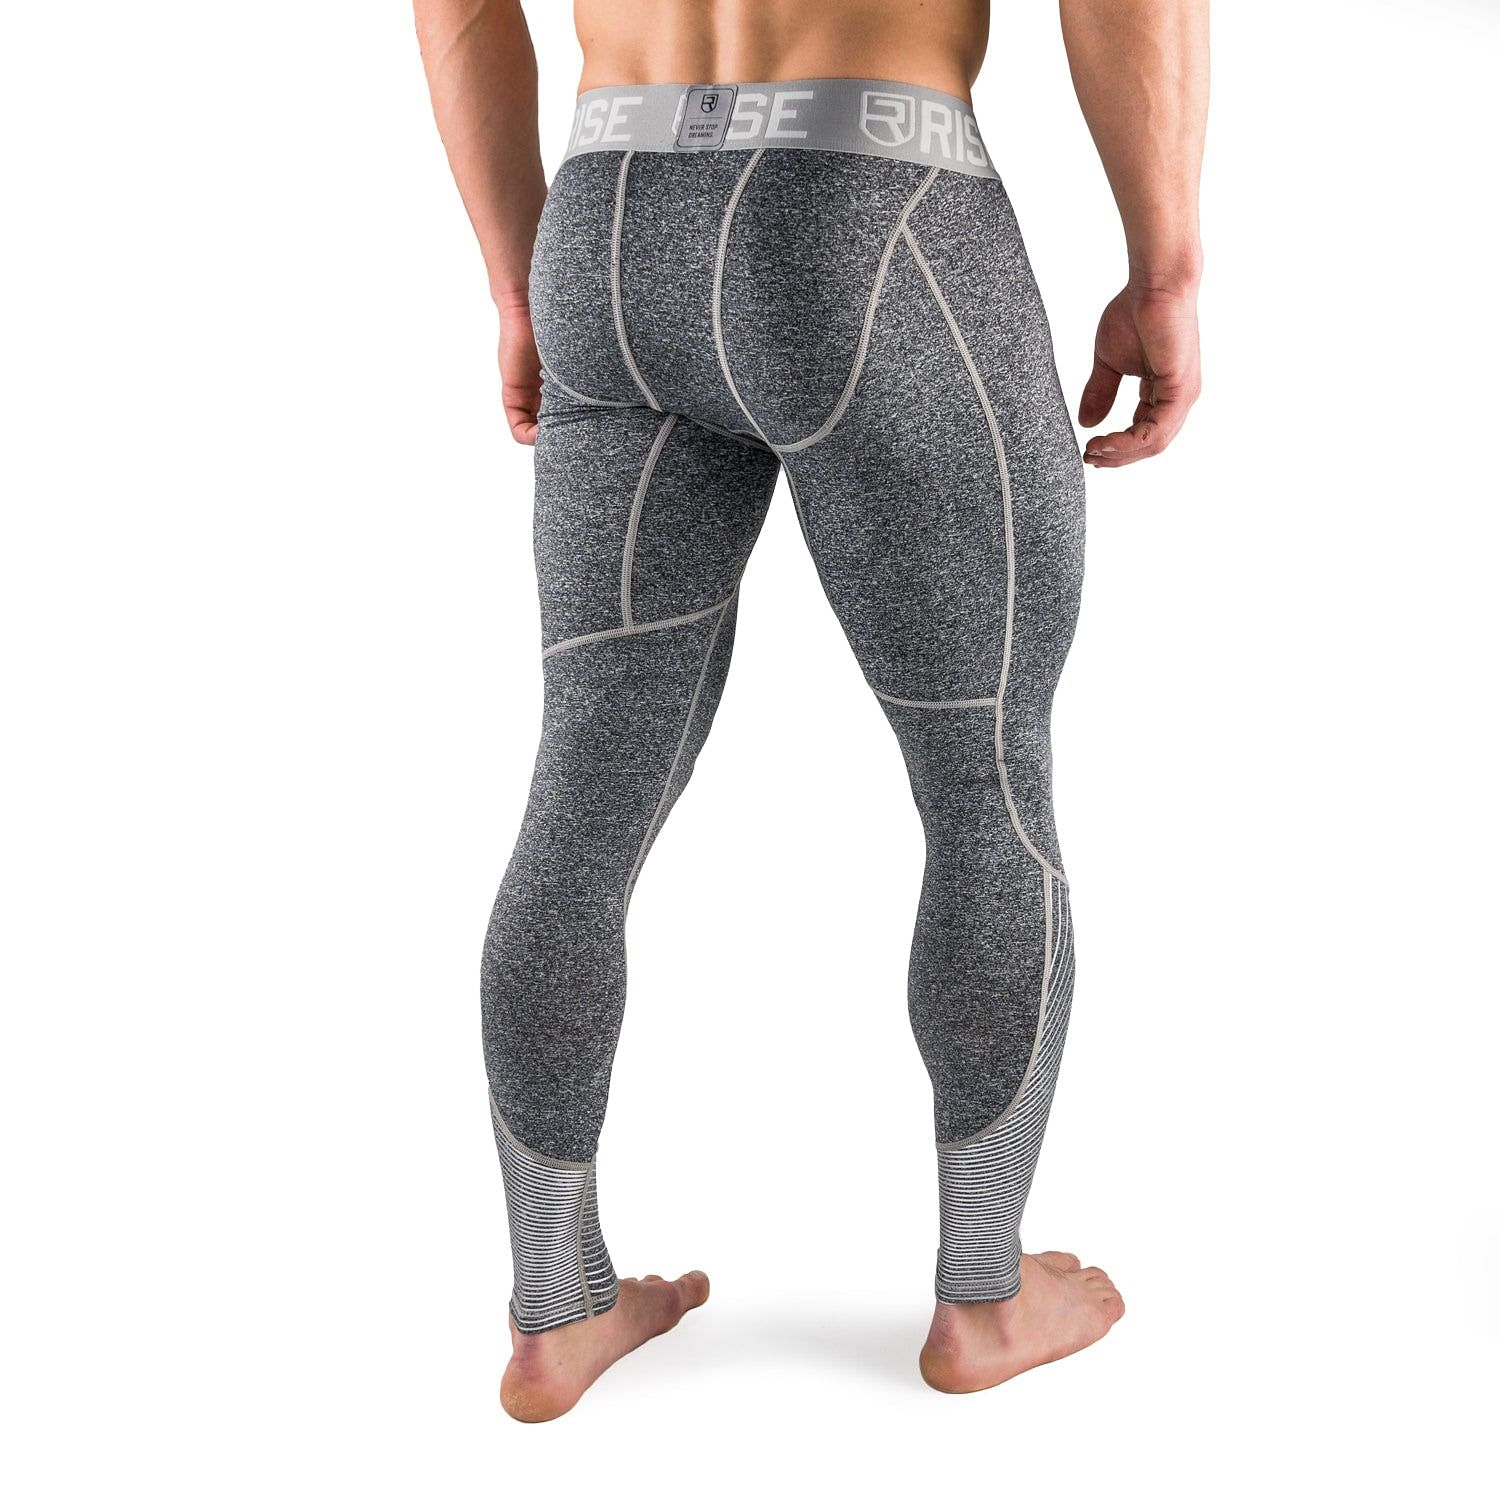 Active Dry Compression Pants - Grey - Rise 18deee176699